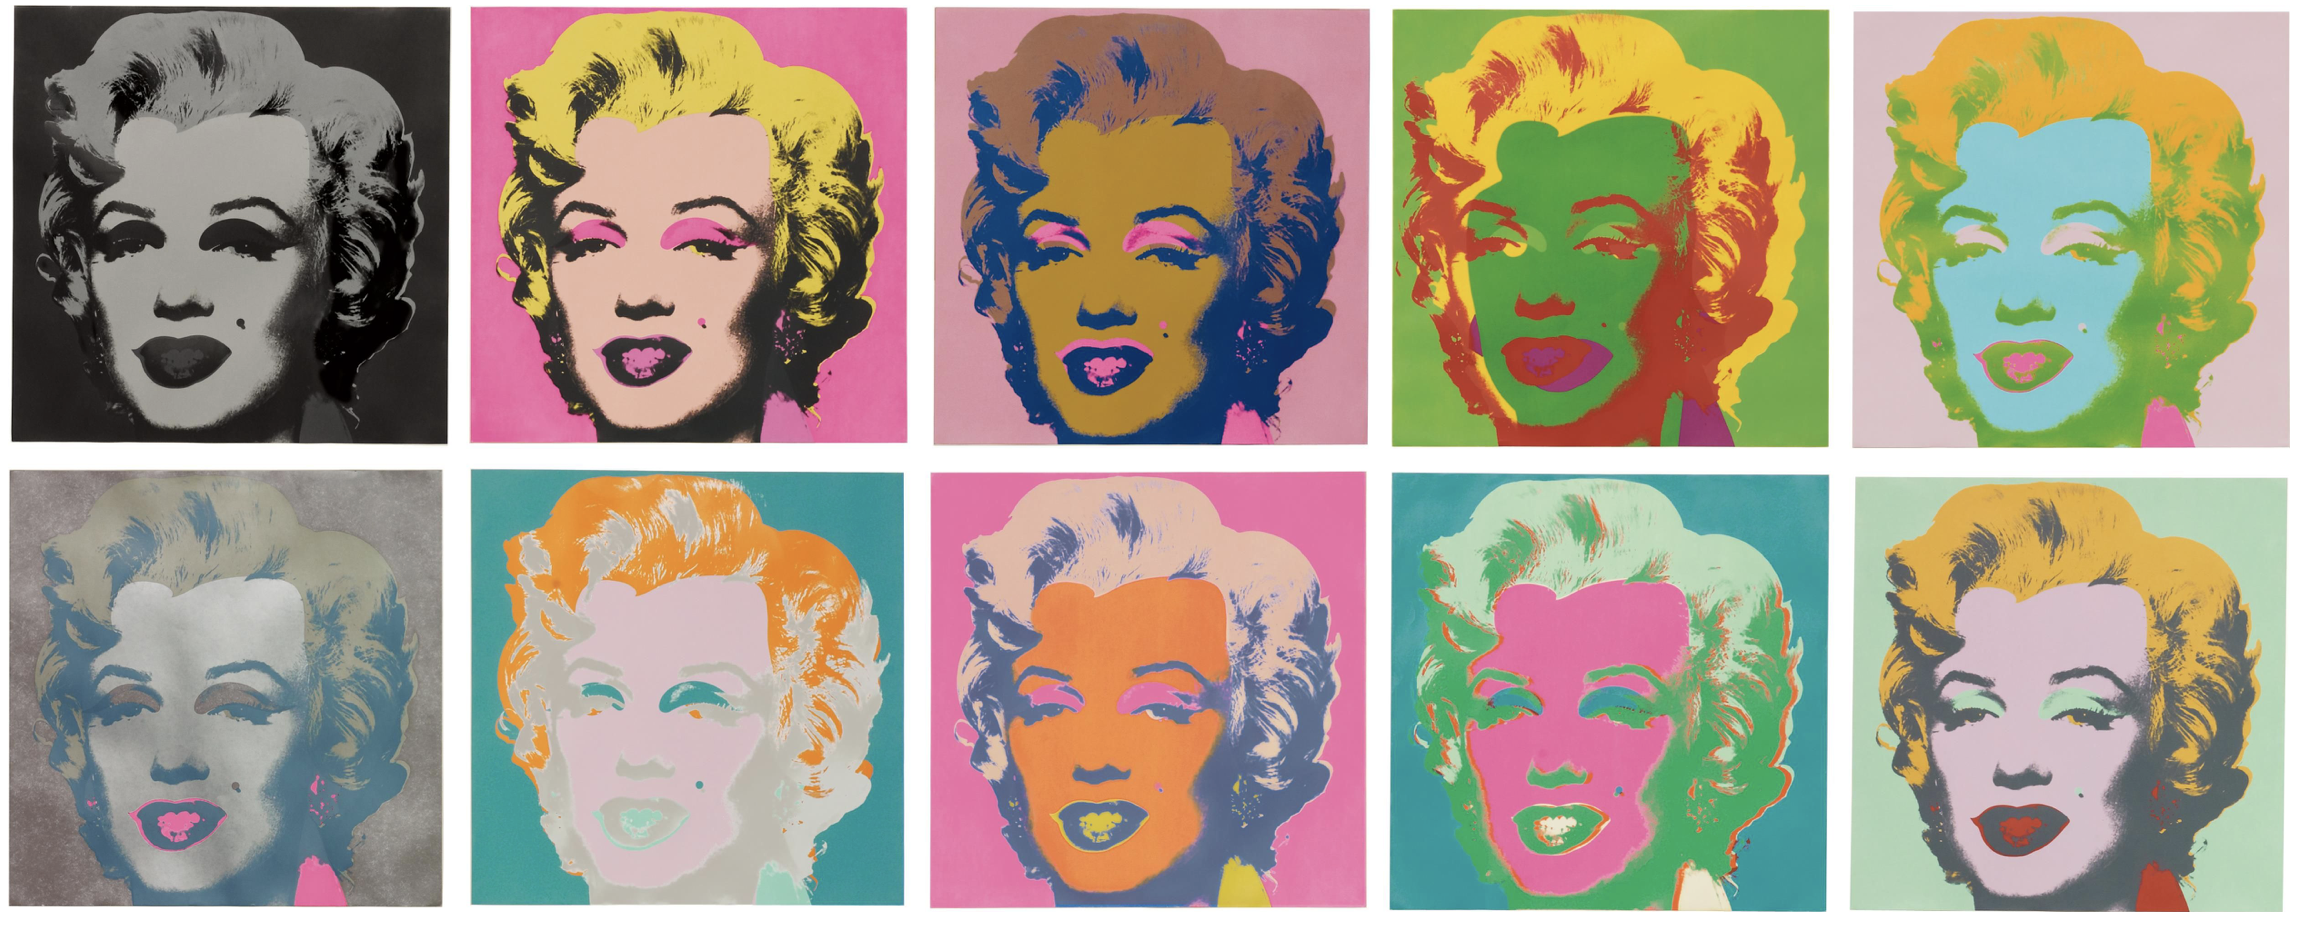 Andy Warhol's screenprints of Marilyn Monroe, Museum of Modern Art New York